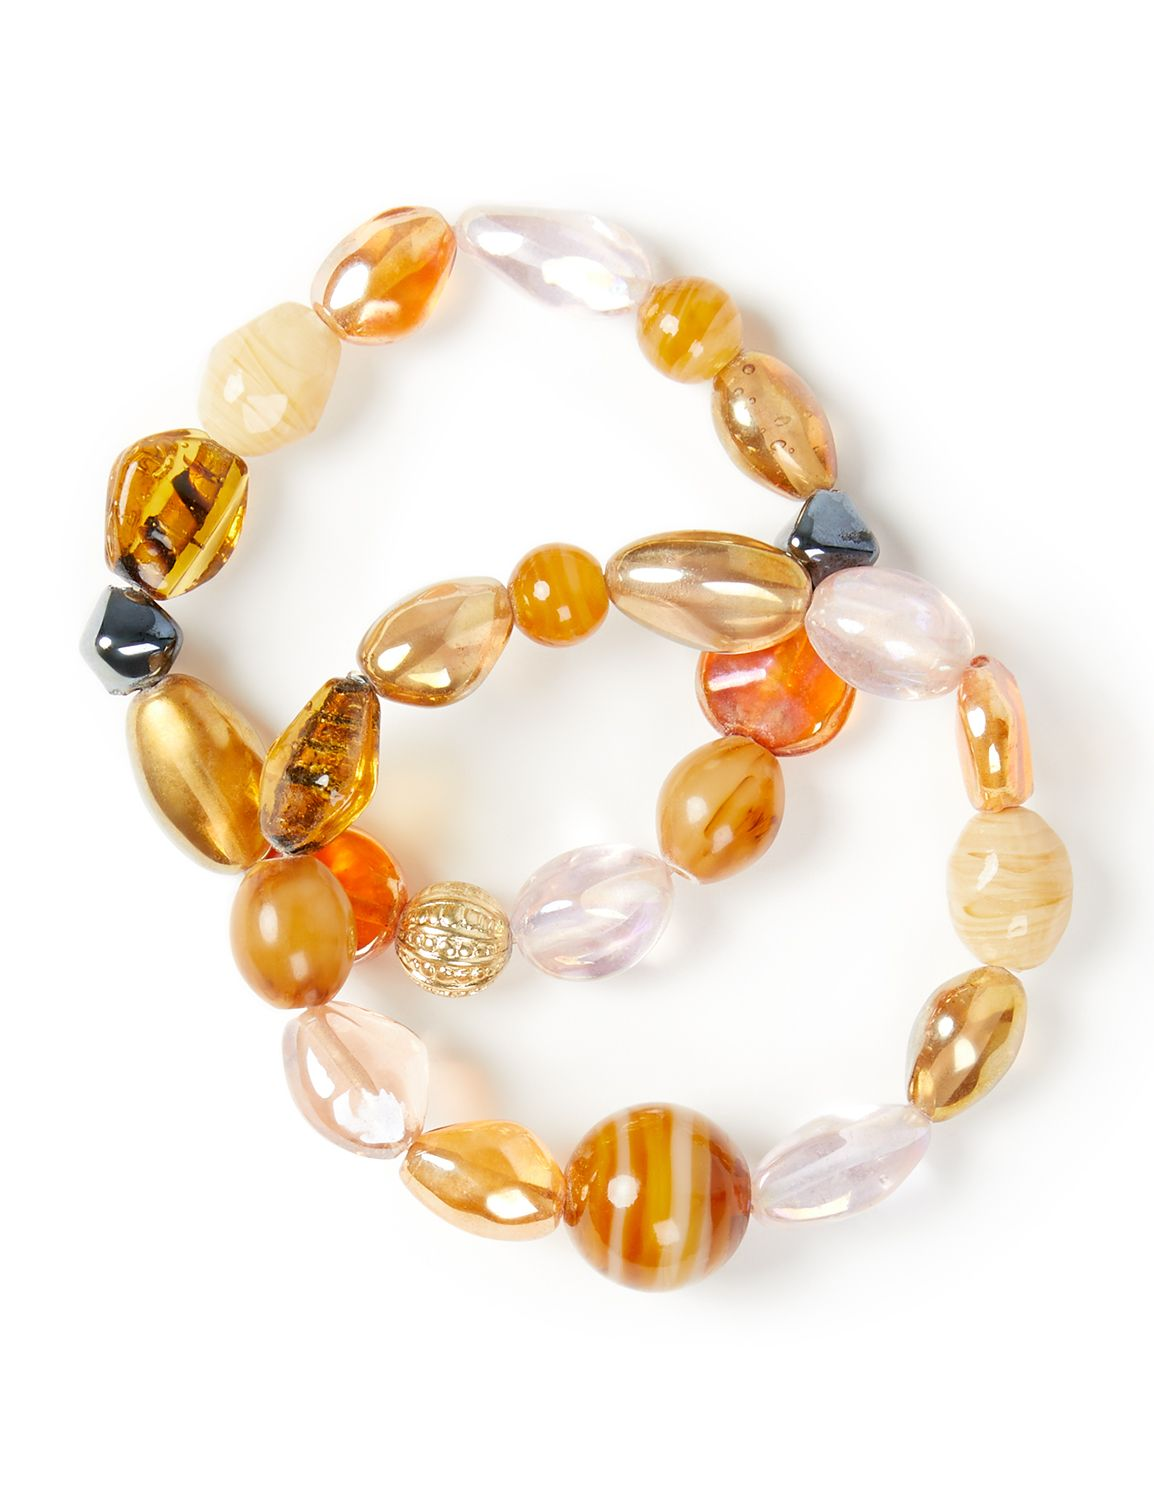 Scenic Beaded Bracelets NBF 2row marble beads BR KT0721B130 MP-300099218